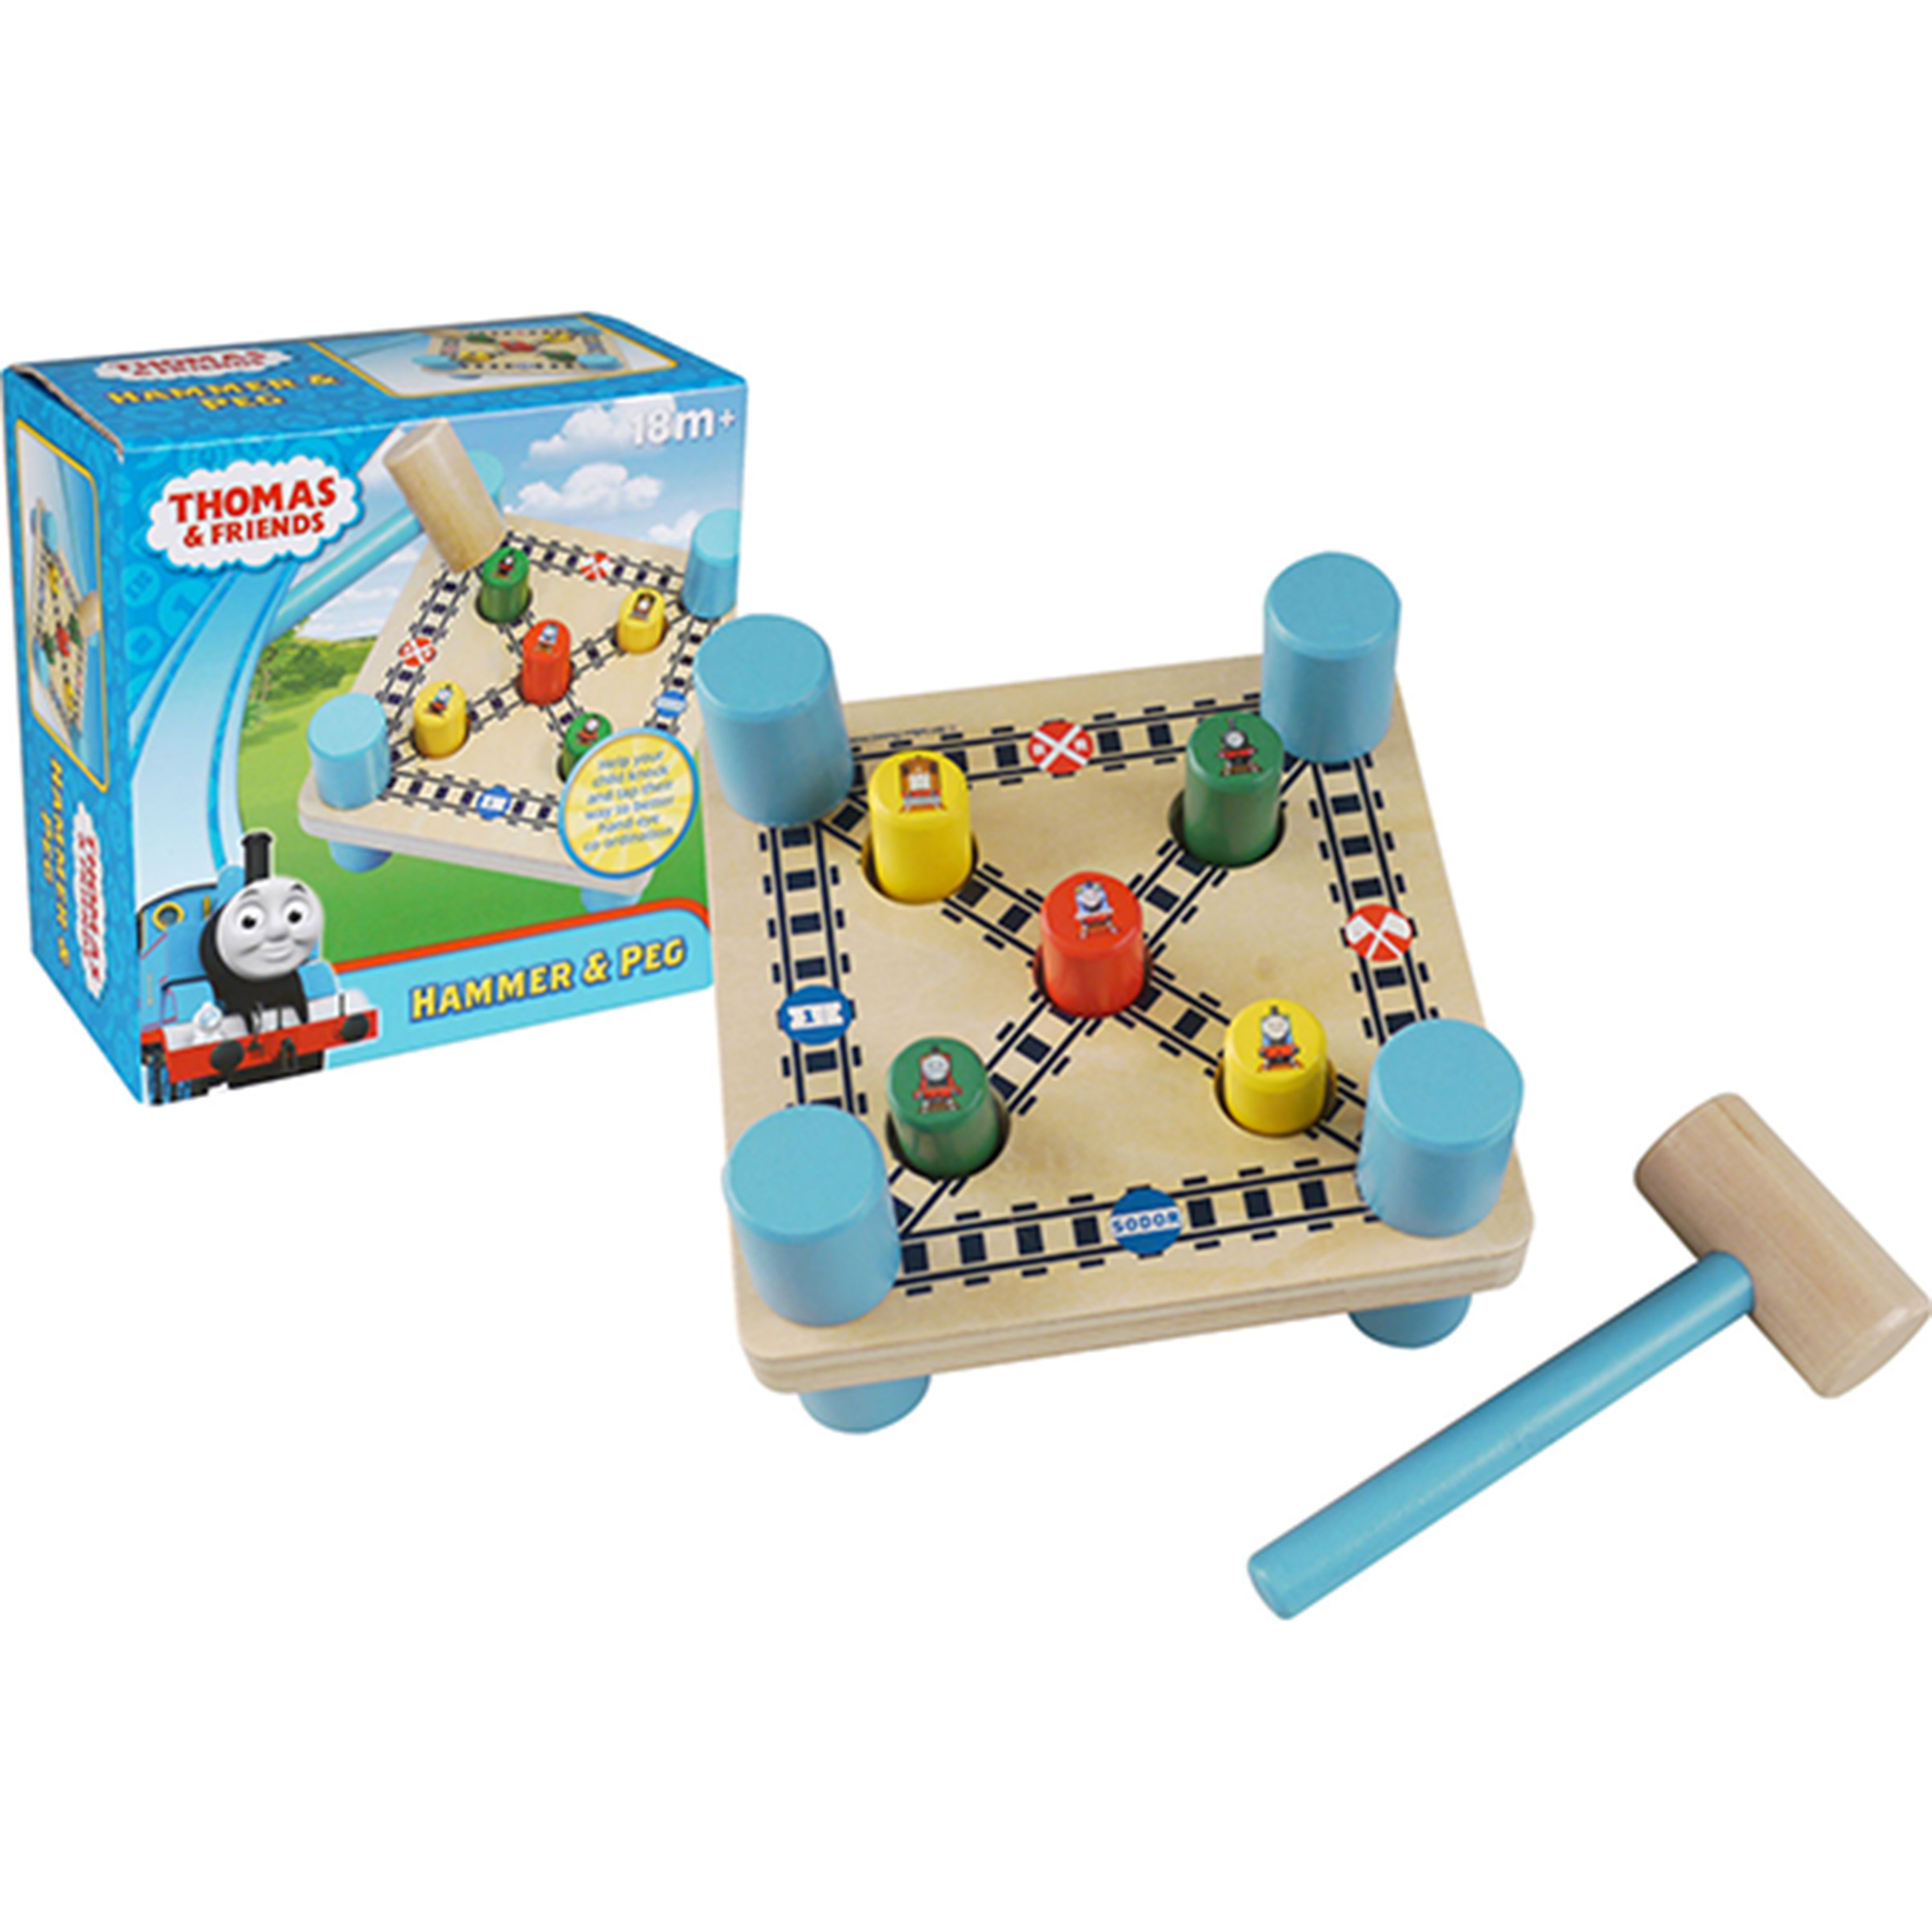 Thomas and Friends Hammer & Peg Game by Tree Toys